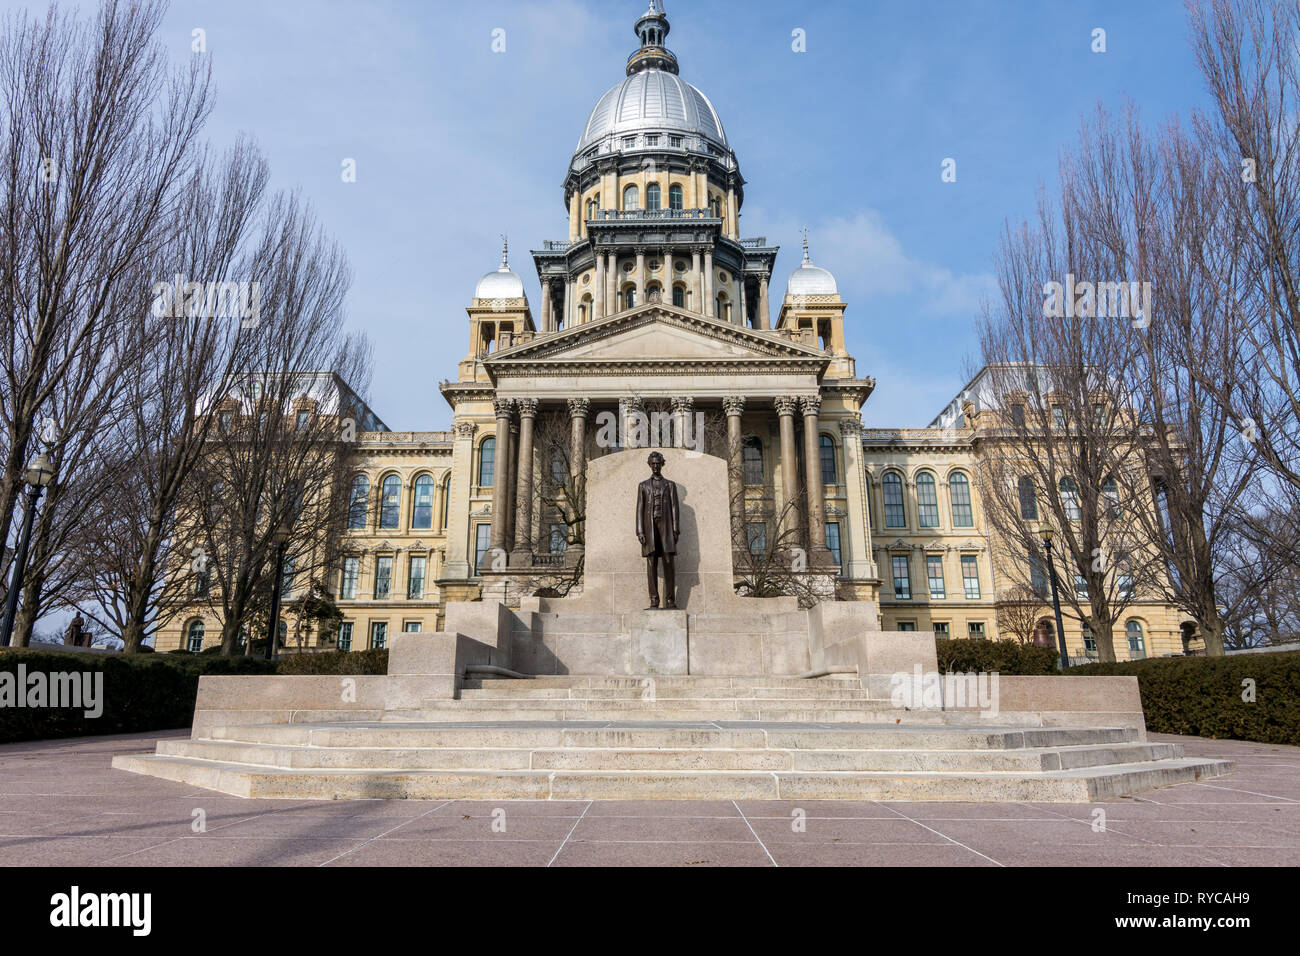 Abraham Lincoln statue standing proud in front of the state capitol building in Springfield, Illinois. - Stock Image